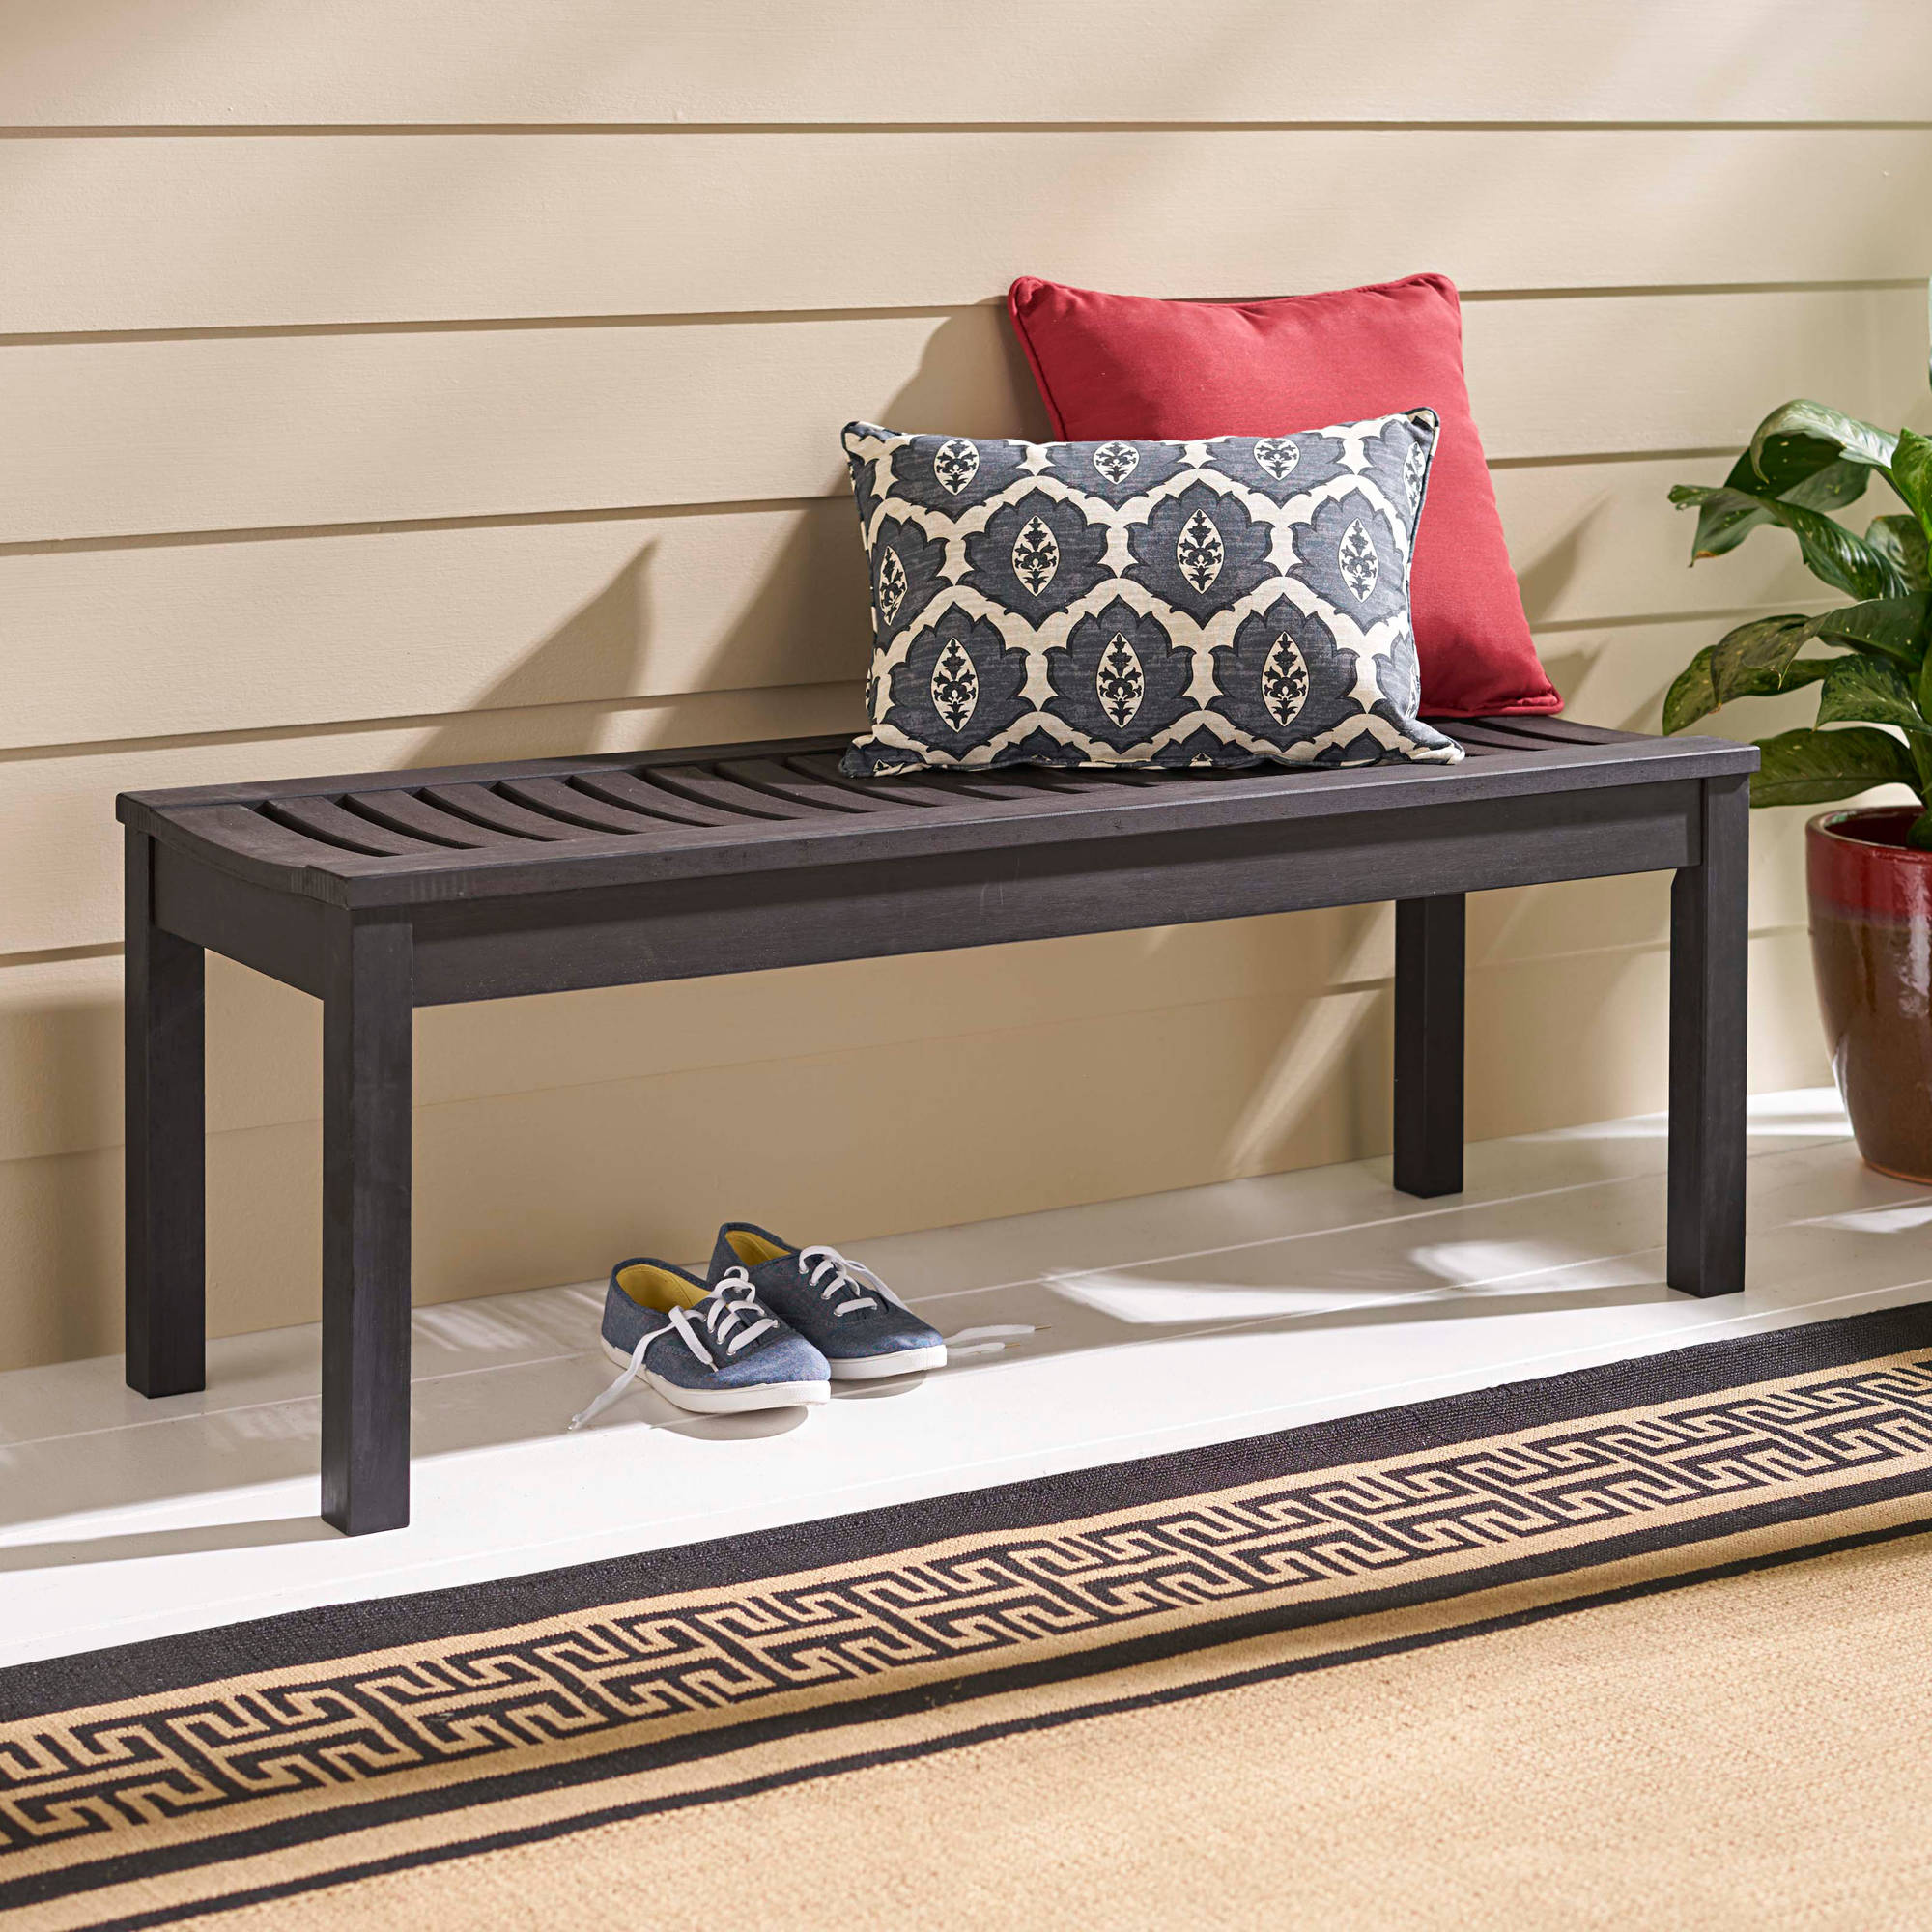 Better Homes And Gardens Delahey Backless Outdoor Garden Bench, Dark Brown,  Seats 2